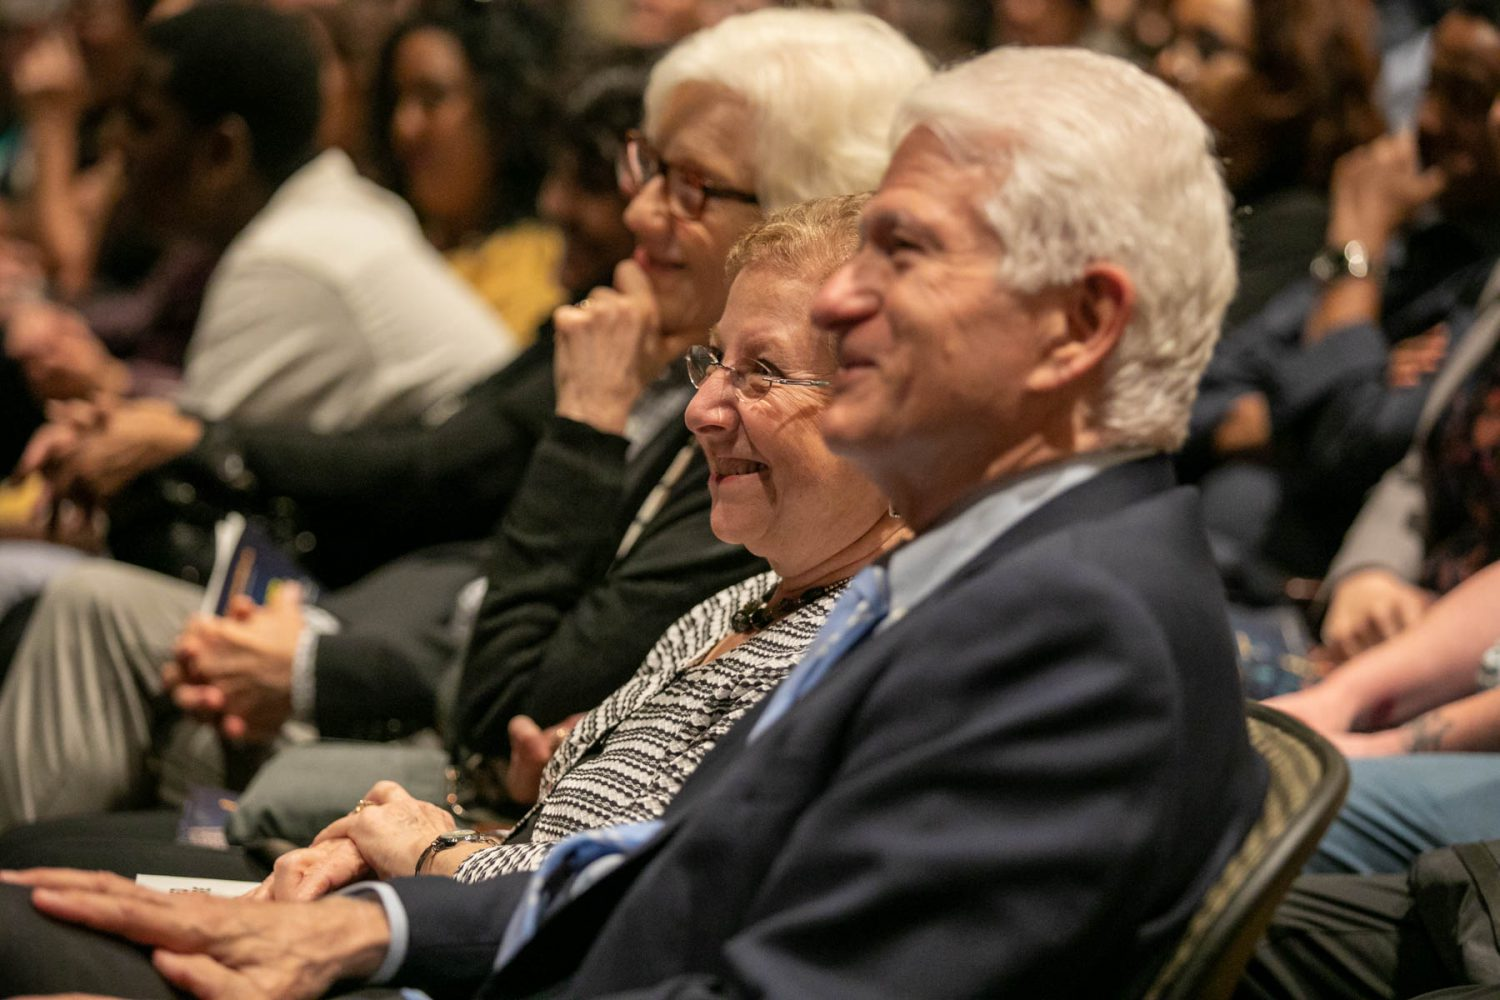 Chancellor Gene Block and Mrs. Carol Block in the audience.